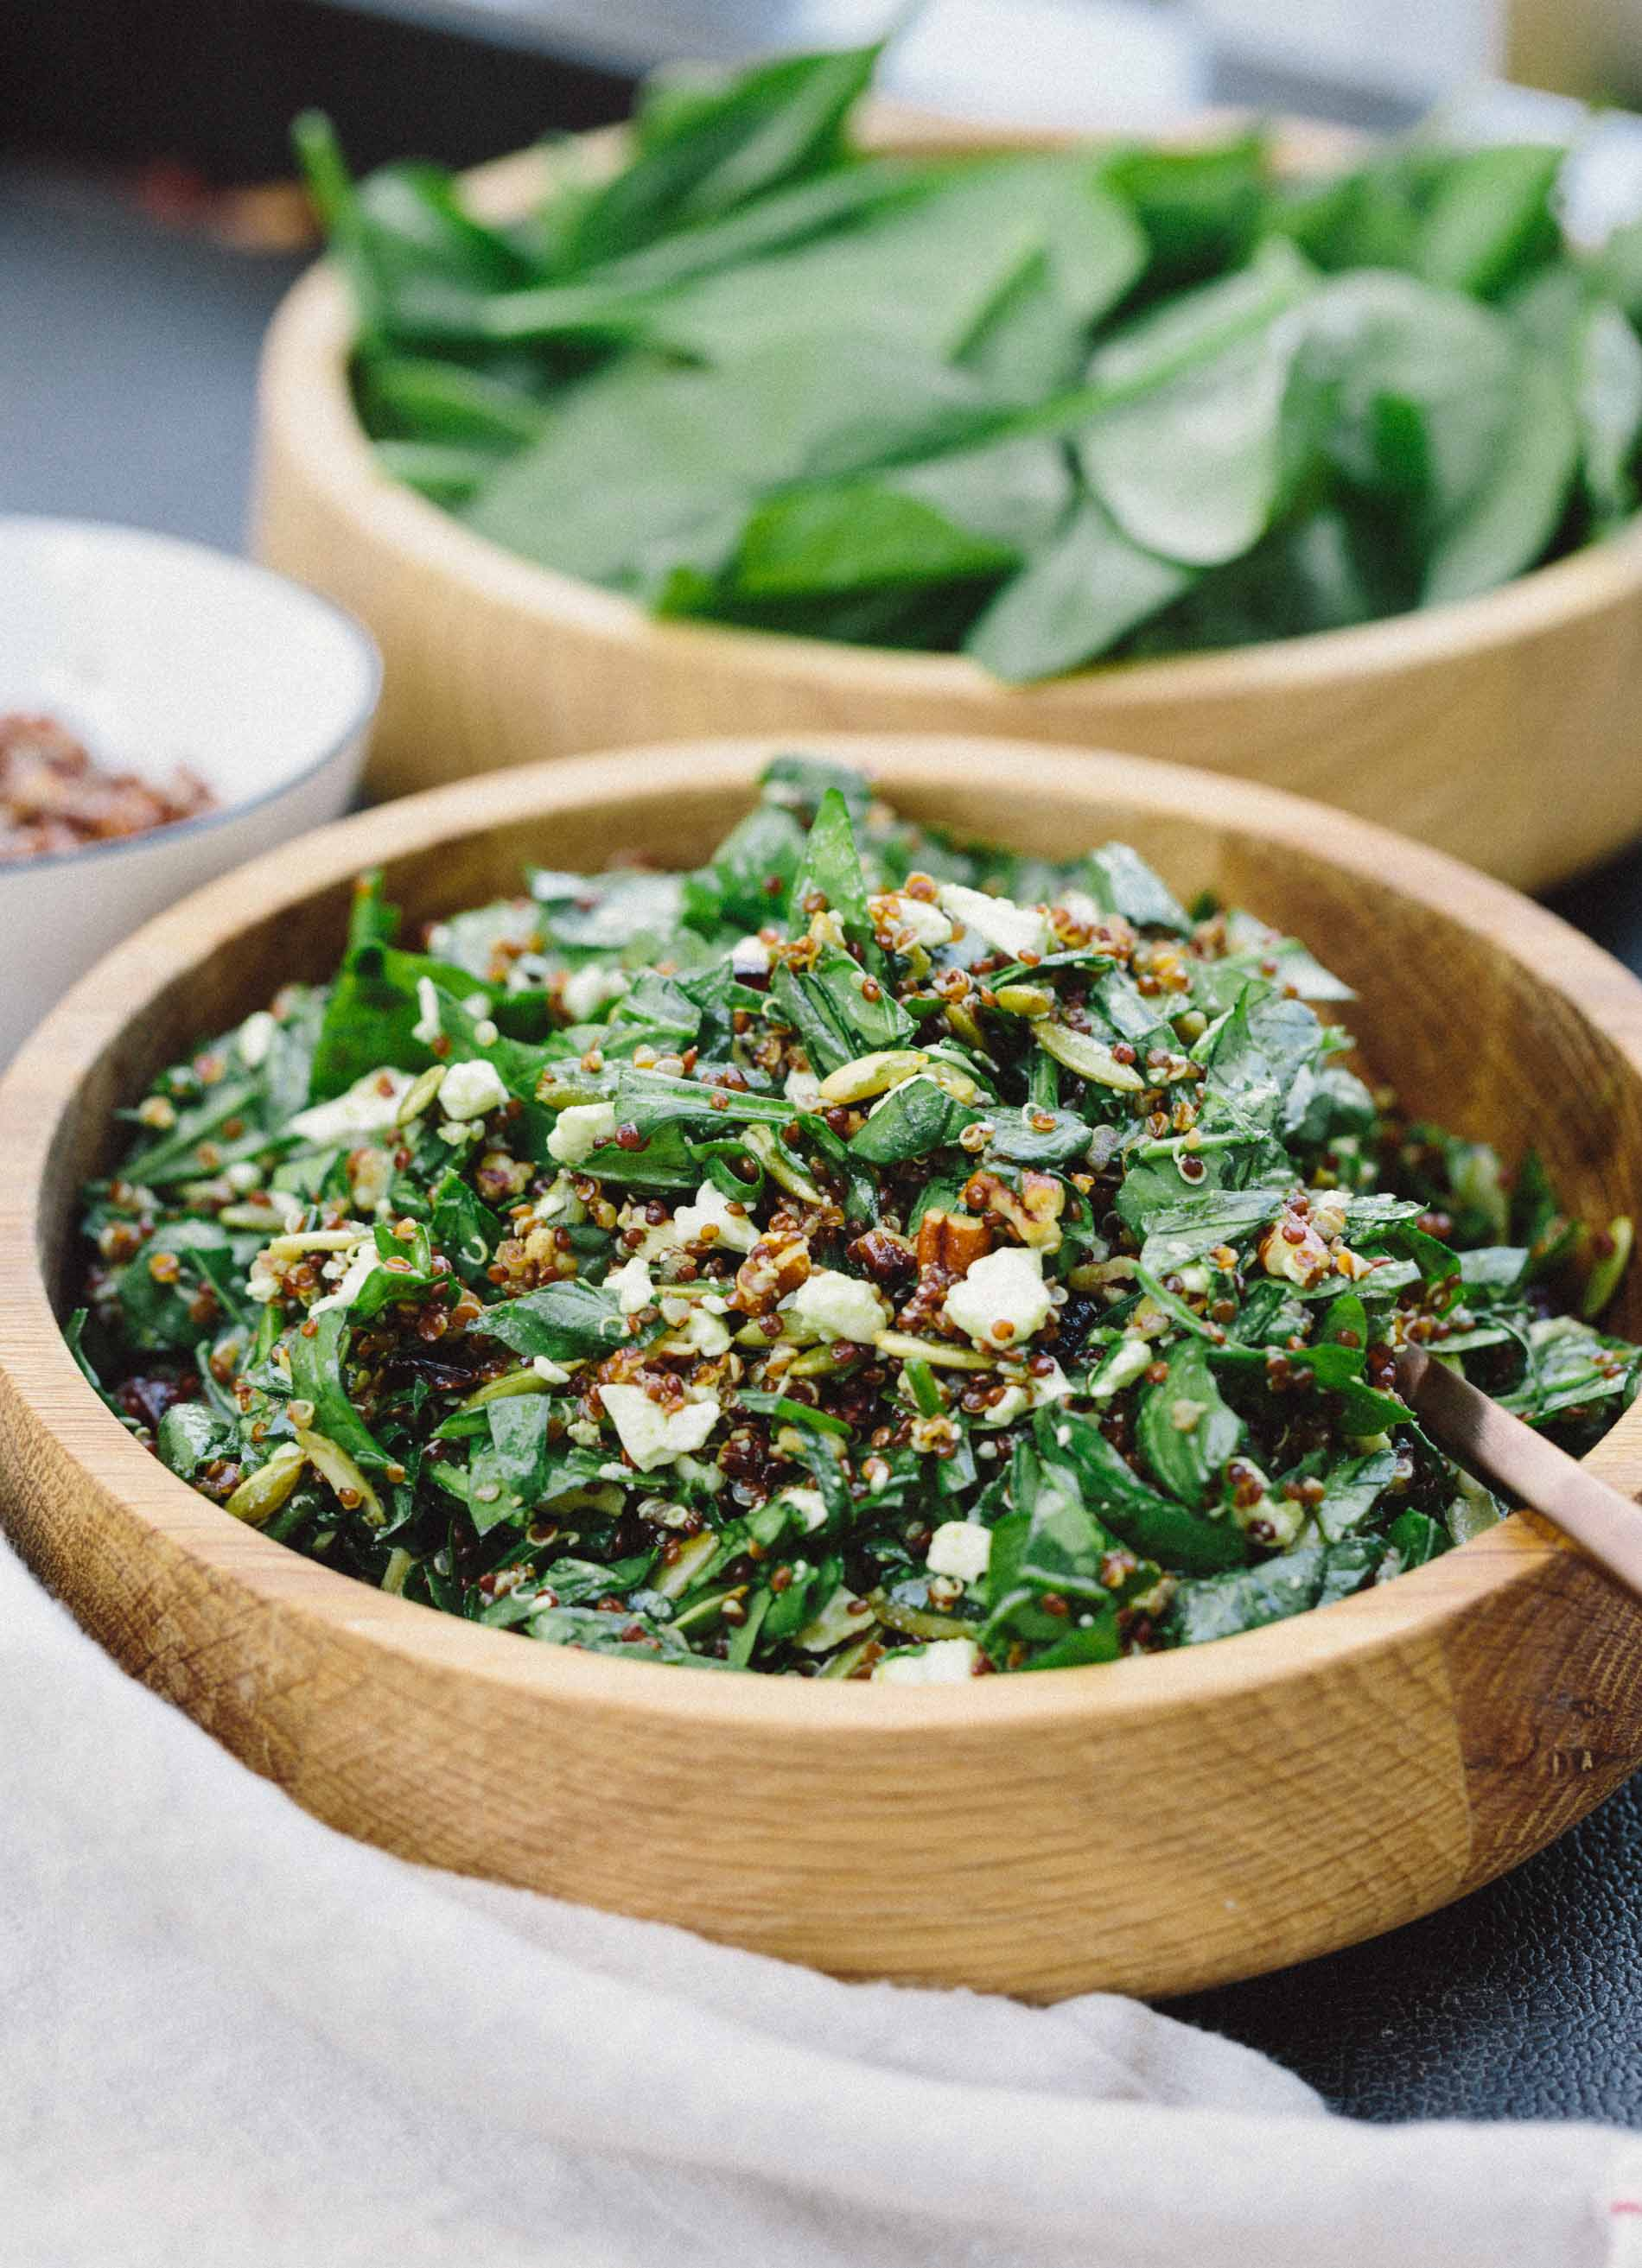 An easy yet elegant nutty spinach and quinoa salad that is perfect as any side accompaniment to any meal! #sidesalad #quinoa #spinachsalad #easysalad #saladrecipe #babyspinach #pumpkinseeds